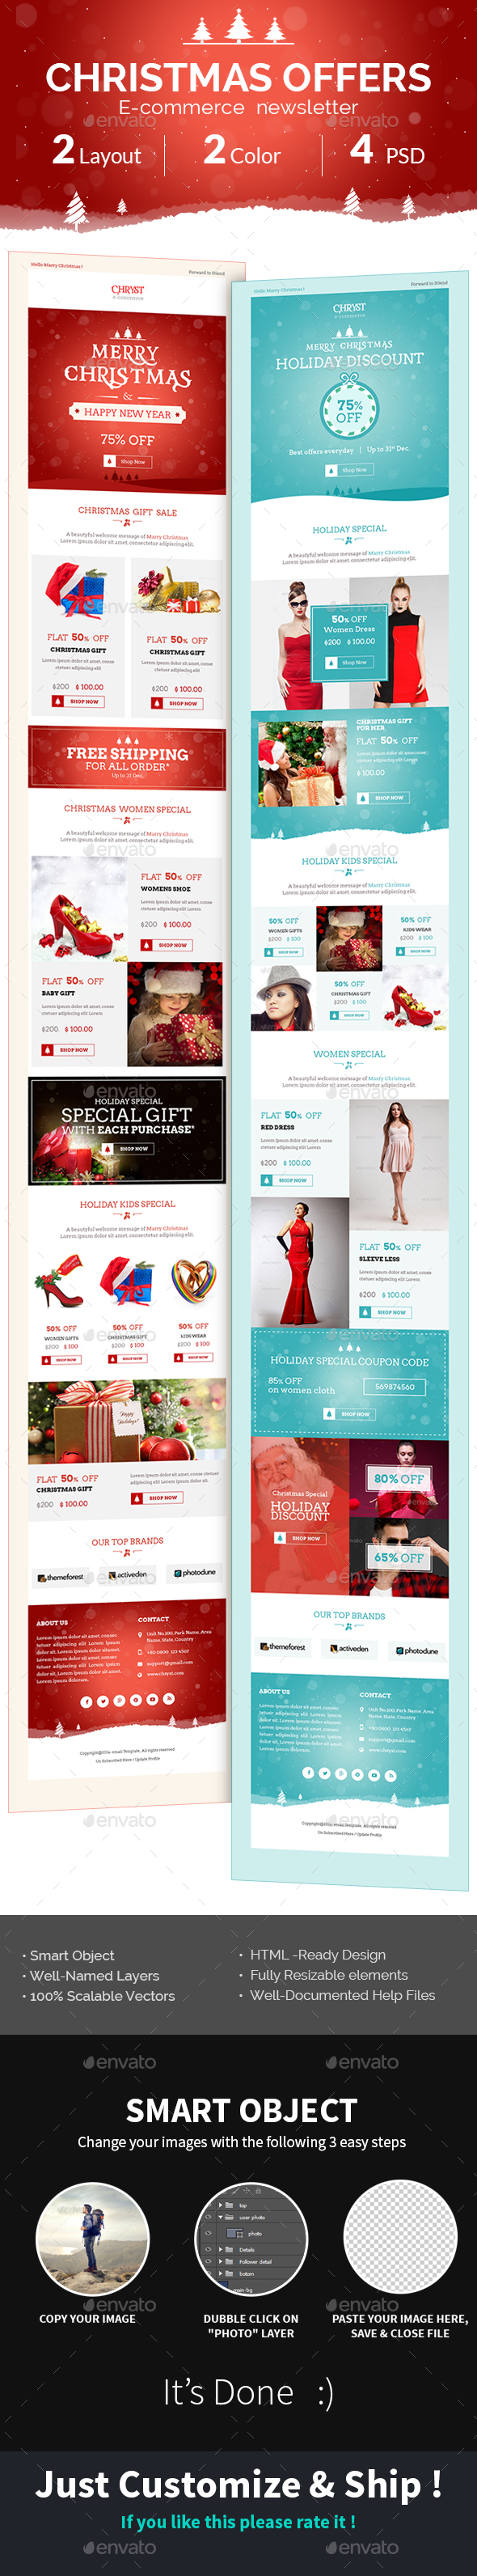 Electronics E Newsletter Templates From Graphicriver